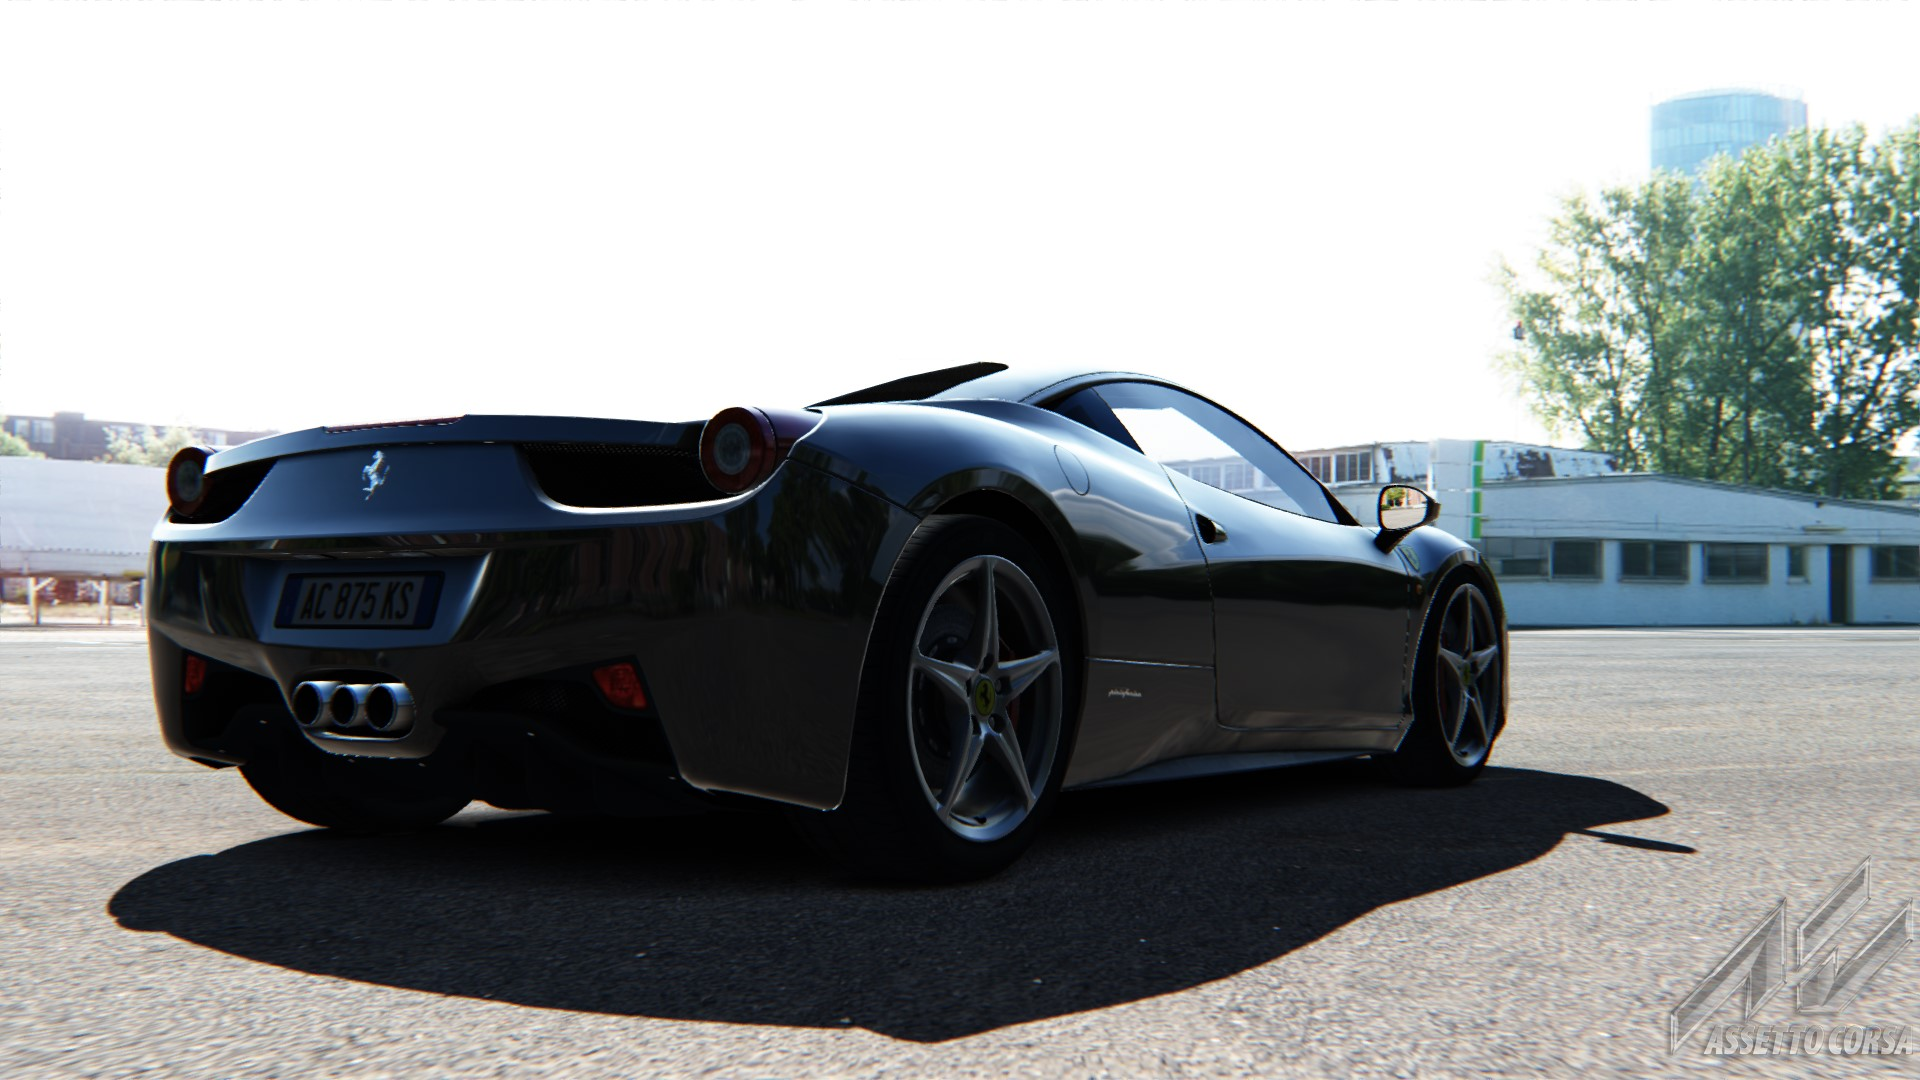 Showroom_ferrari_458_20-8-2017-9-36-11.jpg